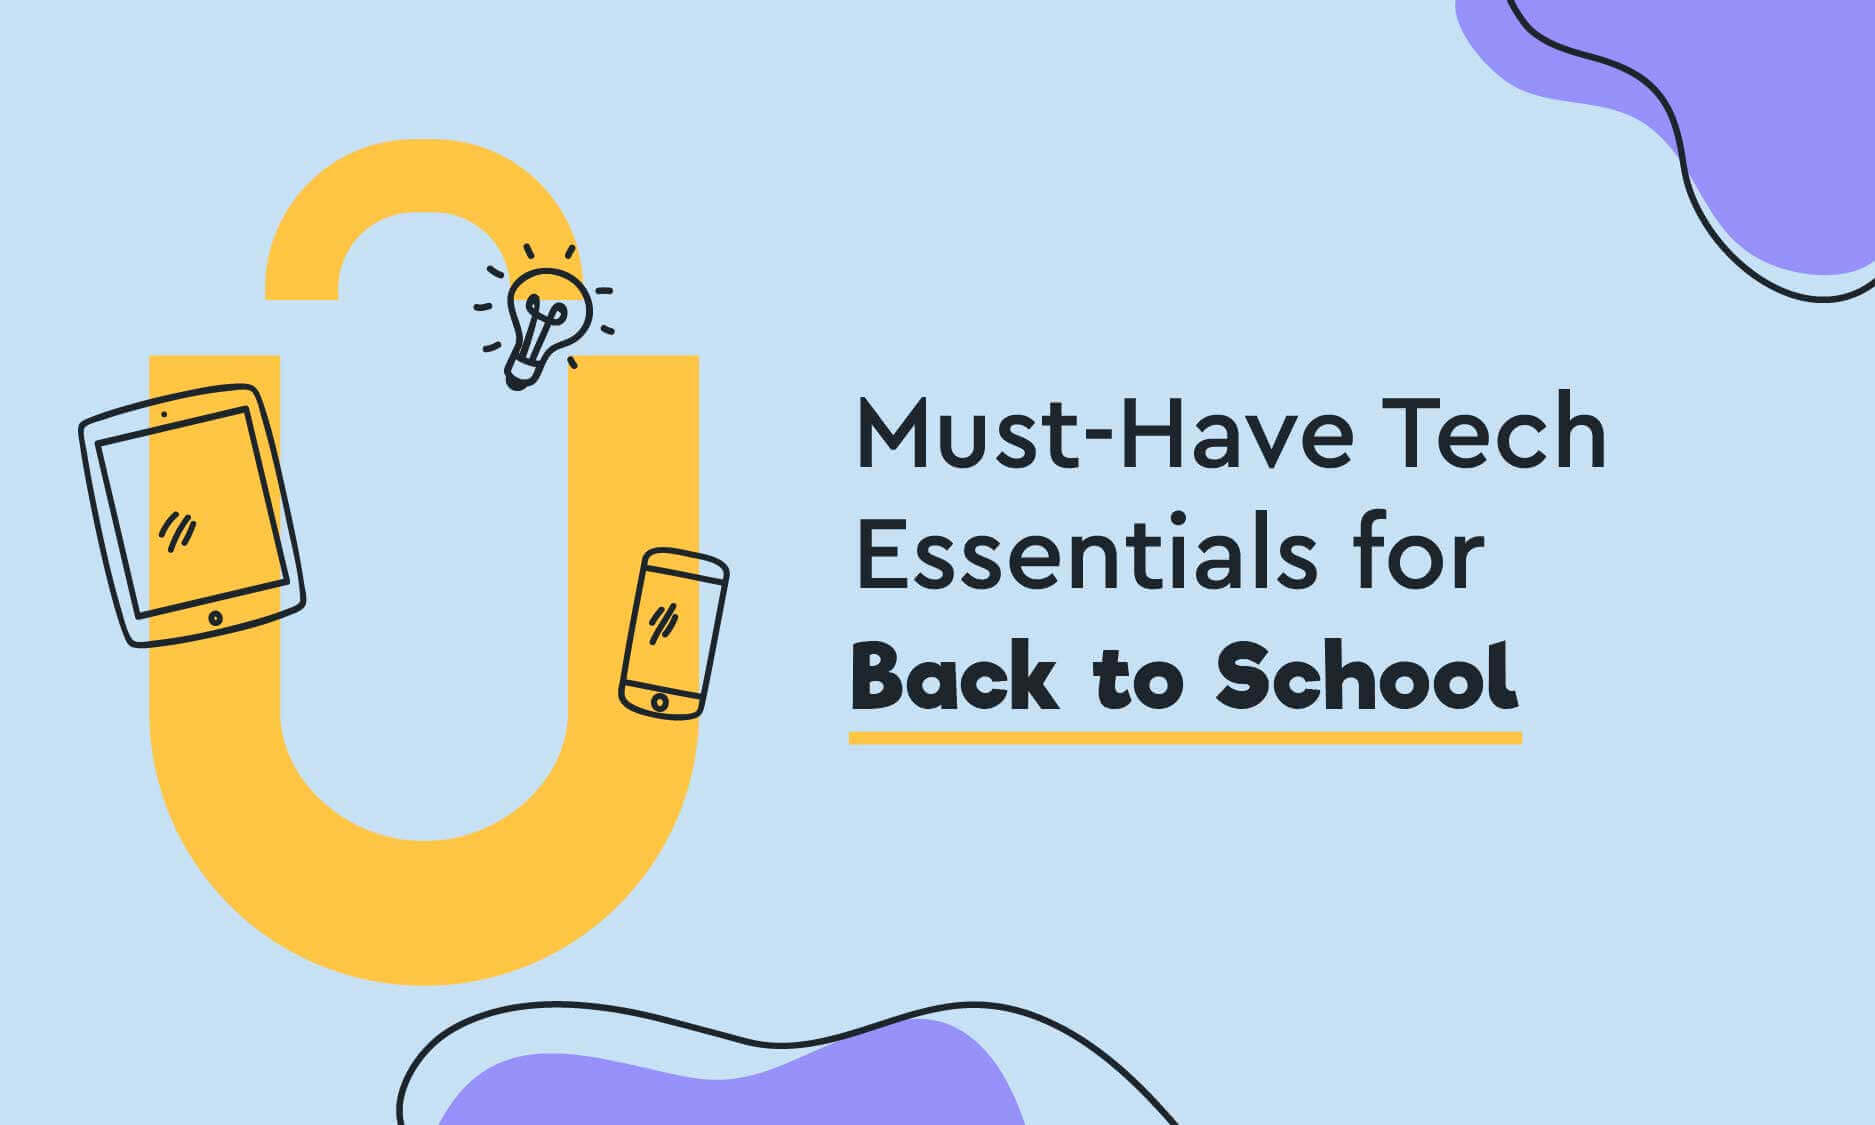 Must-Have Tech Essentials for Back to School